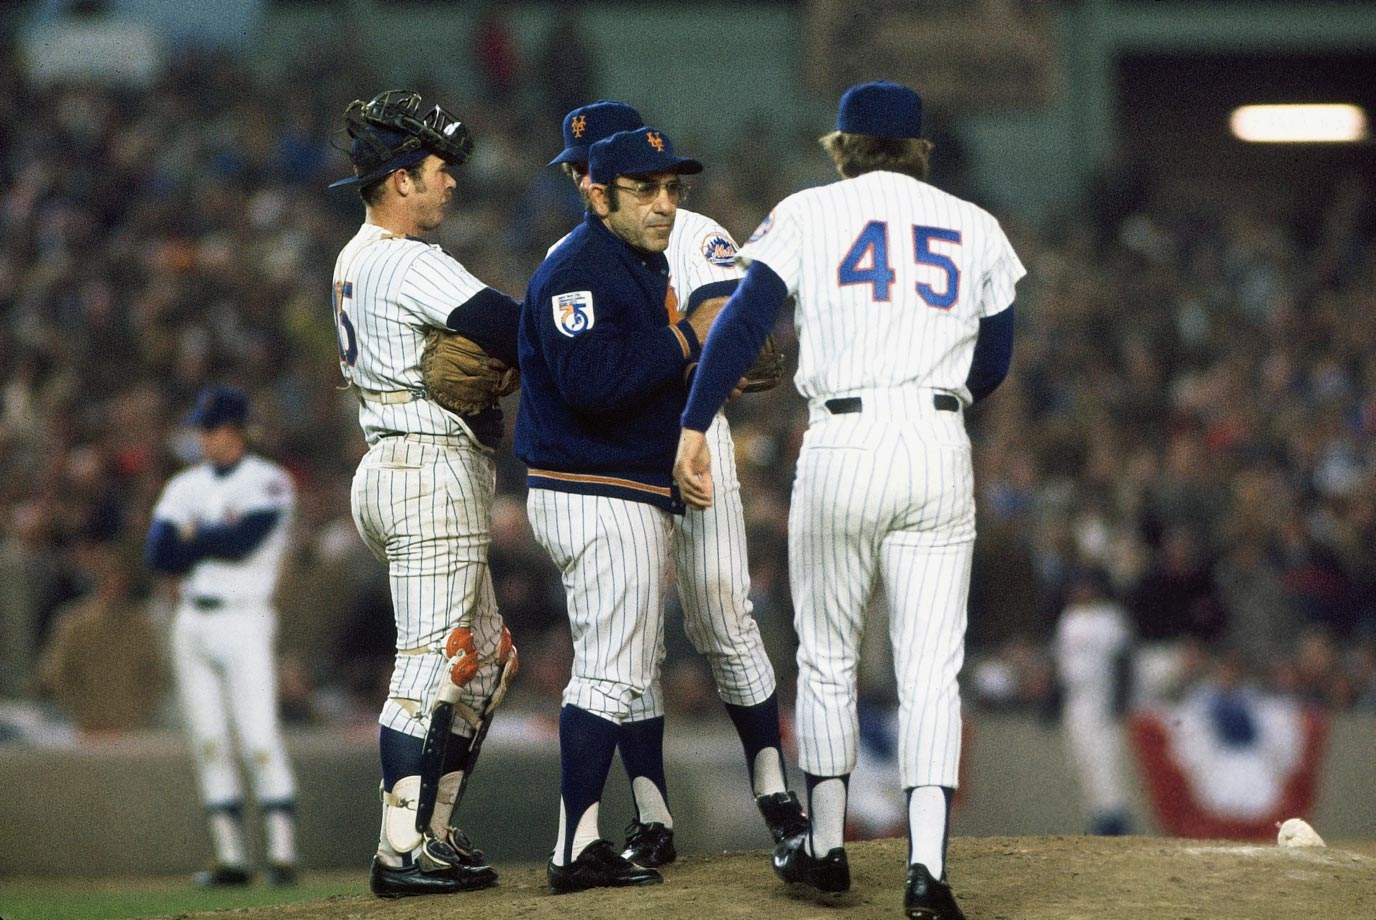 Oct. 18, 1973 — World Series, Game 5